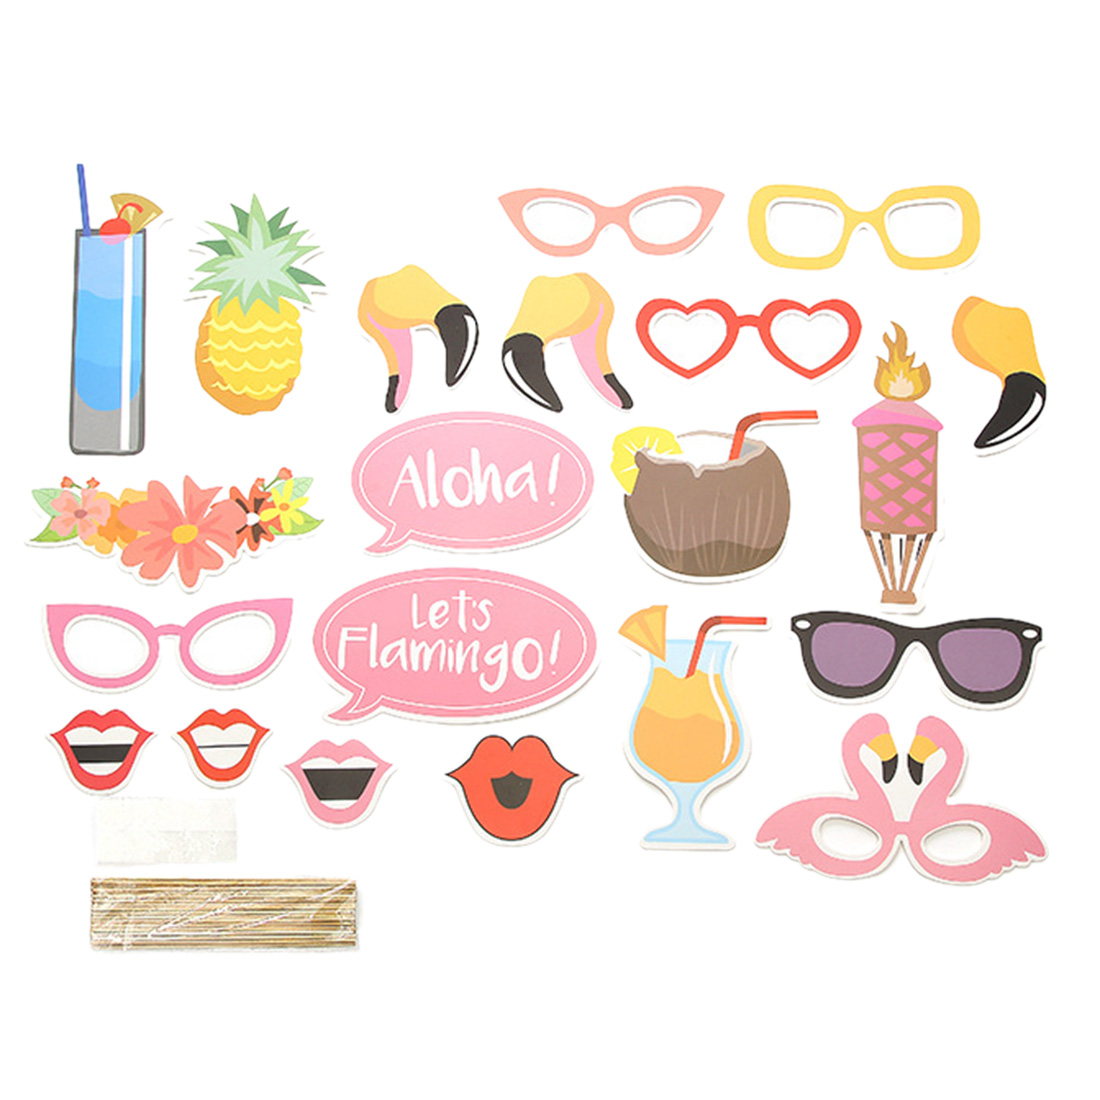 196Pcs Hawaii Themed Kid's Party Flamingo Photo Booth Props Balloons Summer Tissue Flower Tropical Leaf Party Decorations